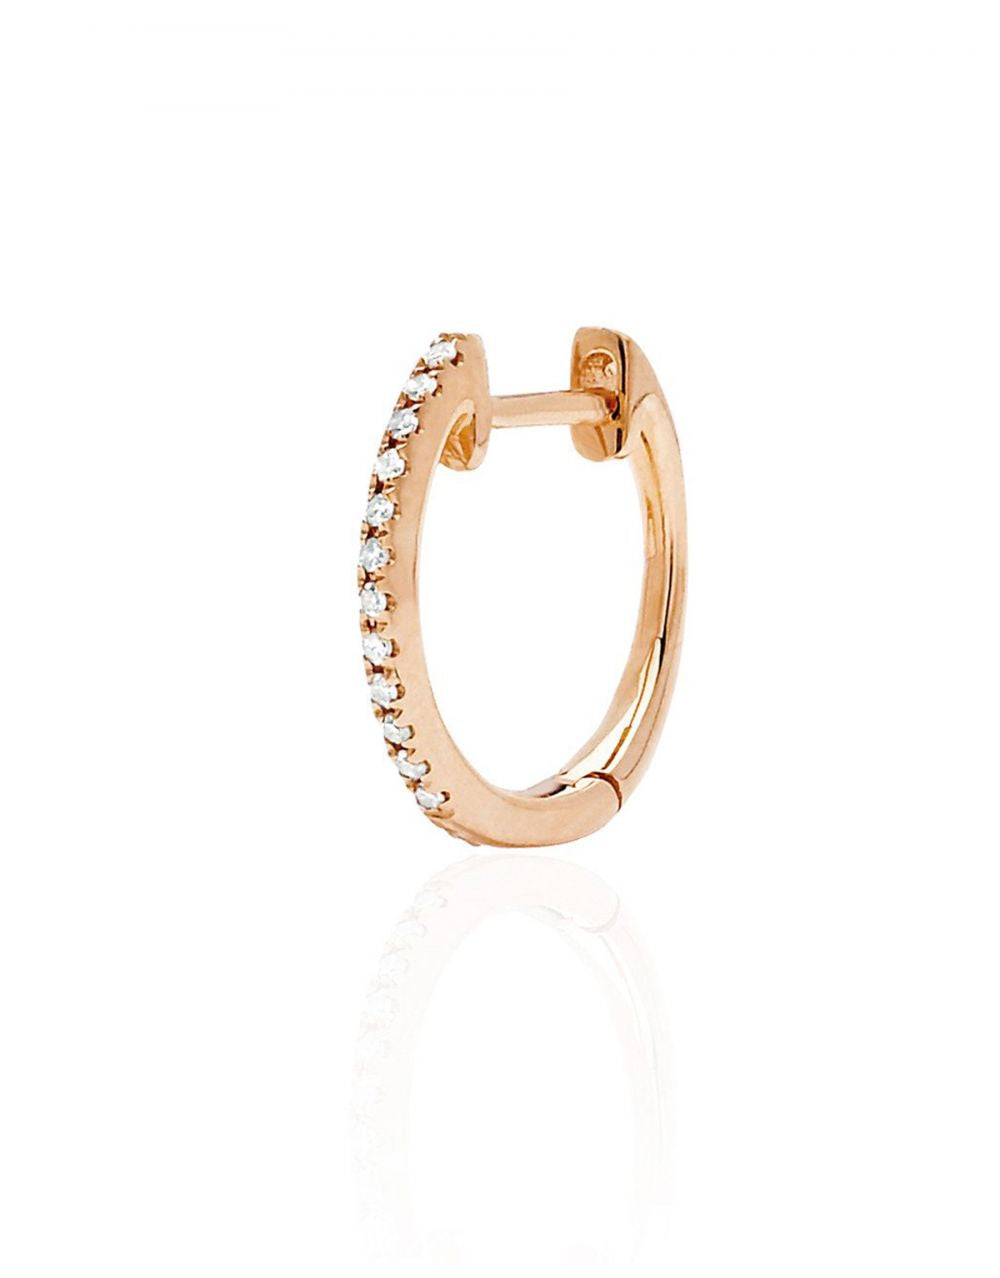 MINI DIAMOND HOOP PIERCING | 14K Rose Gold with White Diamonds - Eddera